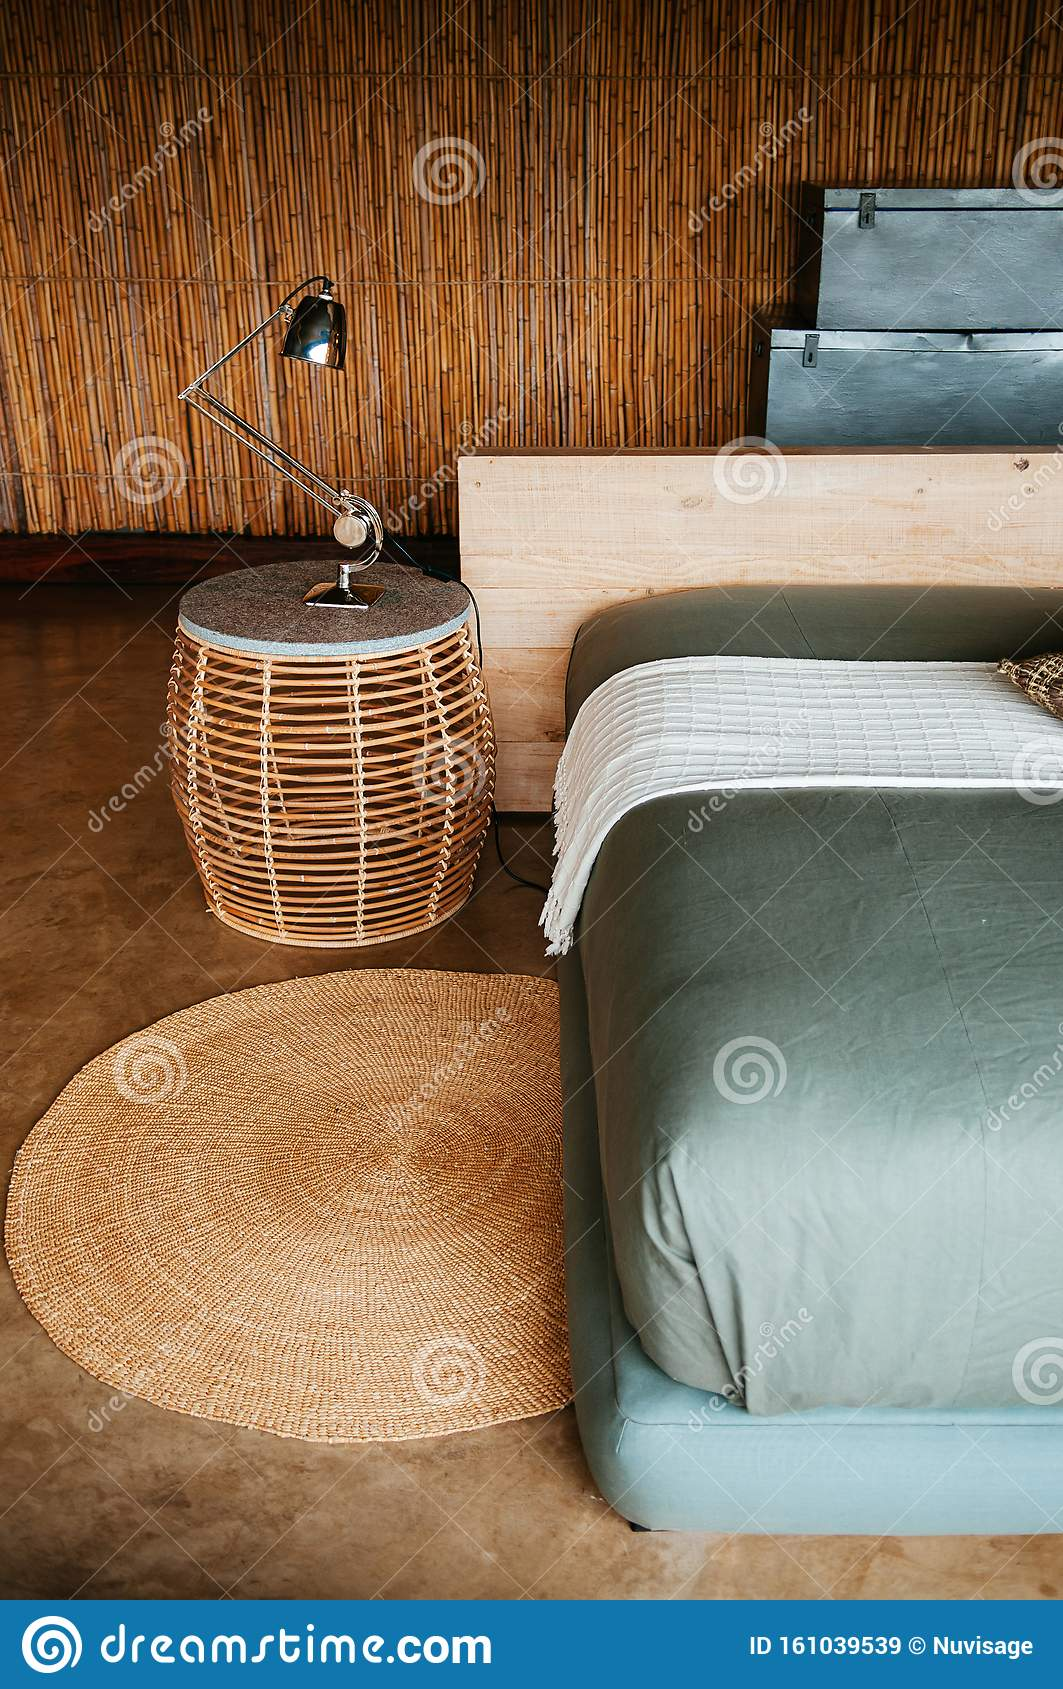 African Asain Boho Contemporary Bedroom Interior With Rattan Side Table And Soft Fabric Bed Editorial Stock Image Image Of Cozy Cushions 161039539